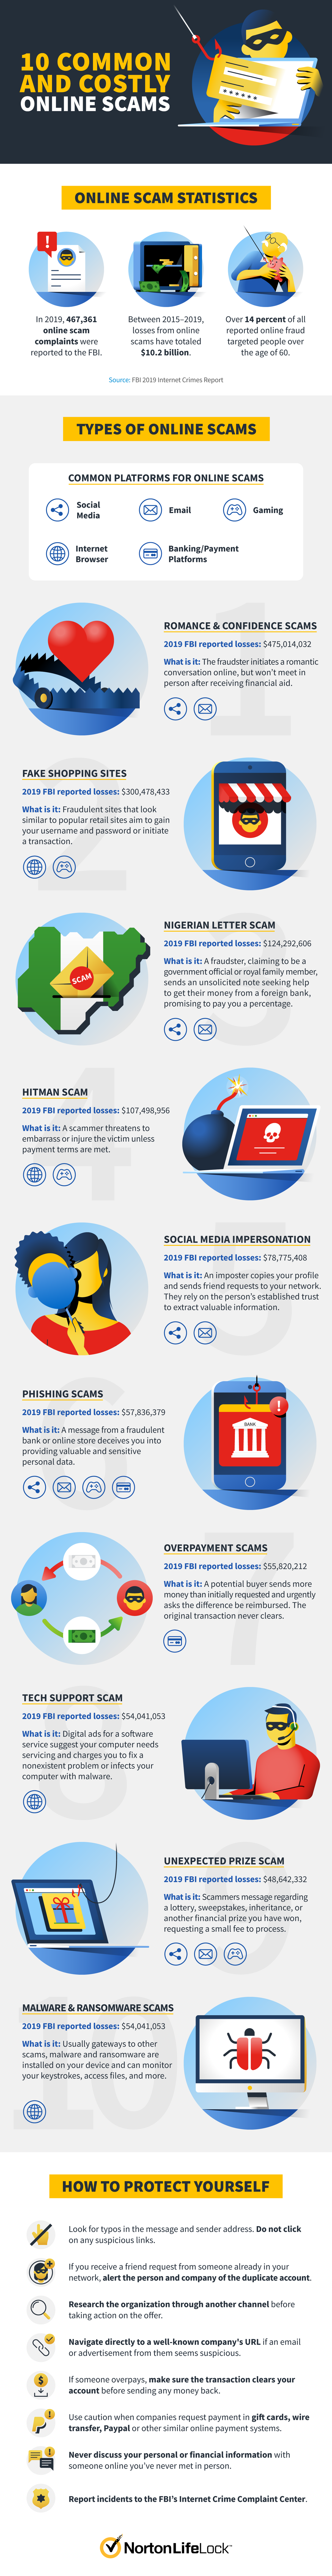 10 common and costly online scams